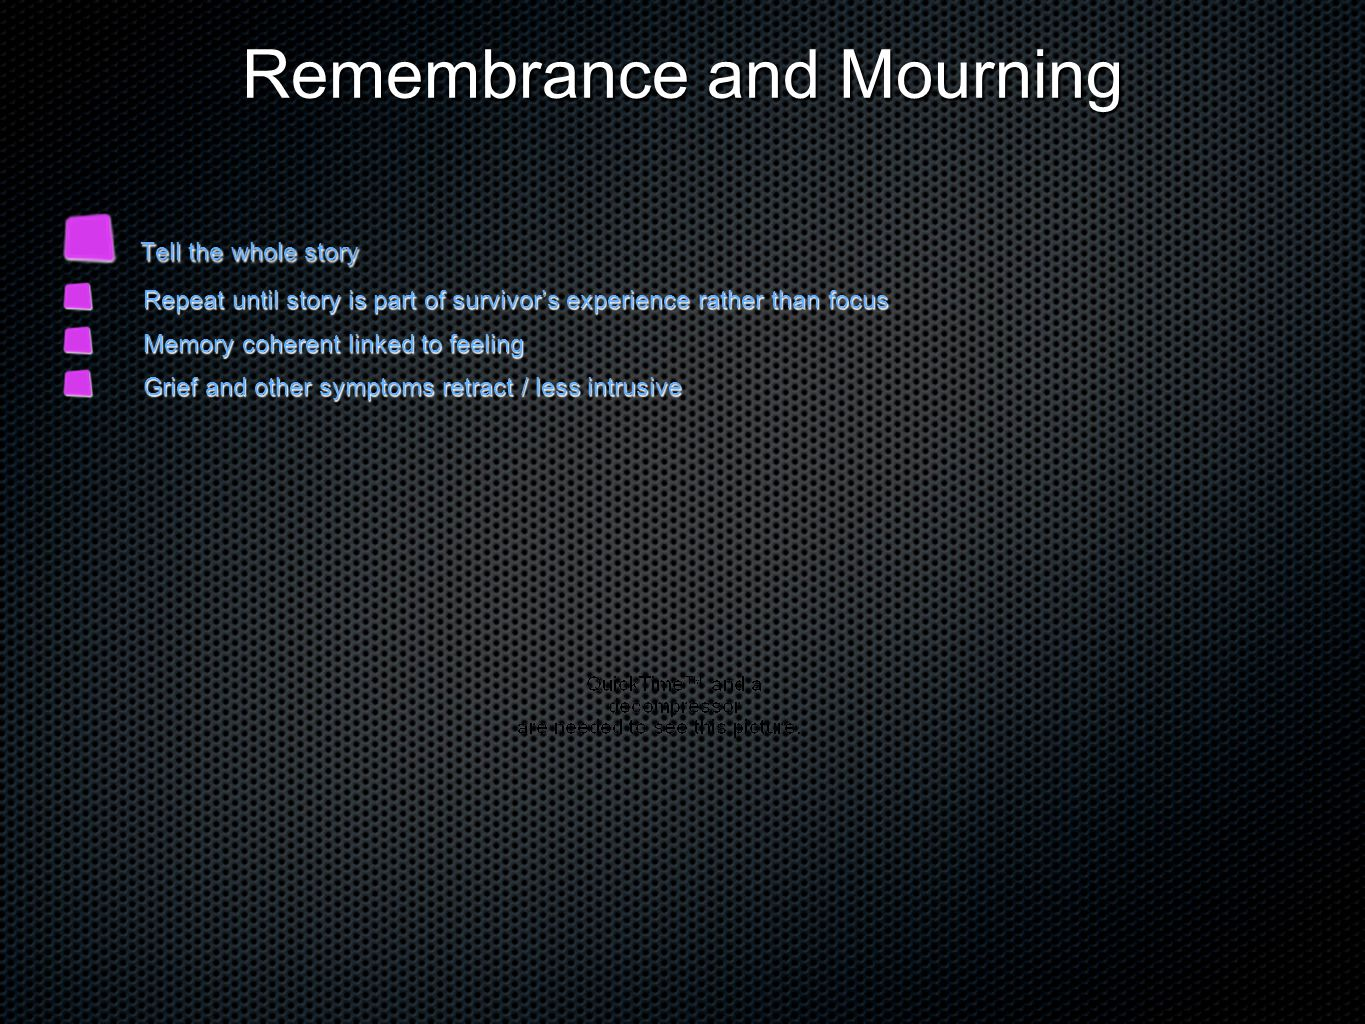 Remembrance and Mourning Tell the whole story Tell the whole story Repeat until story is part of survivor's experience rather than focus Repeat until story is part of survivor's experience rather than focus Memory coherent linked to feeling Memory coherent linked to feeling Grief and other symptoms retract / less intrusive Grief and other symptoms retract / less intrusive